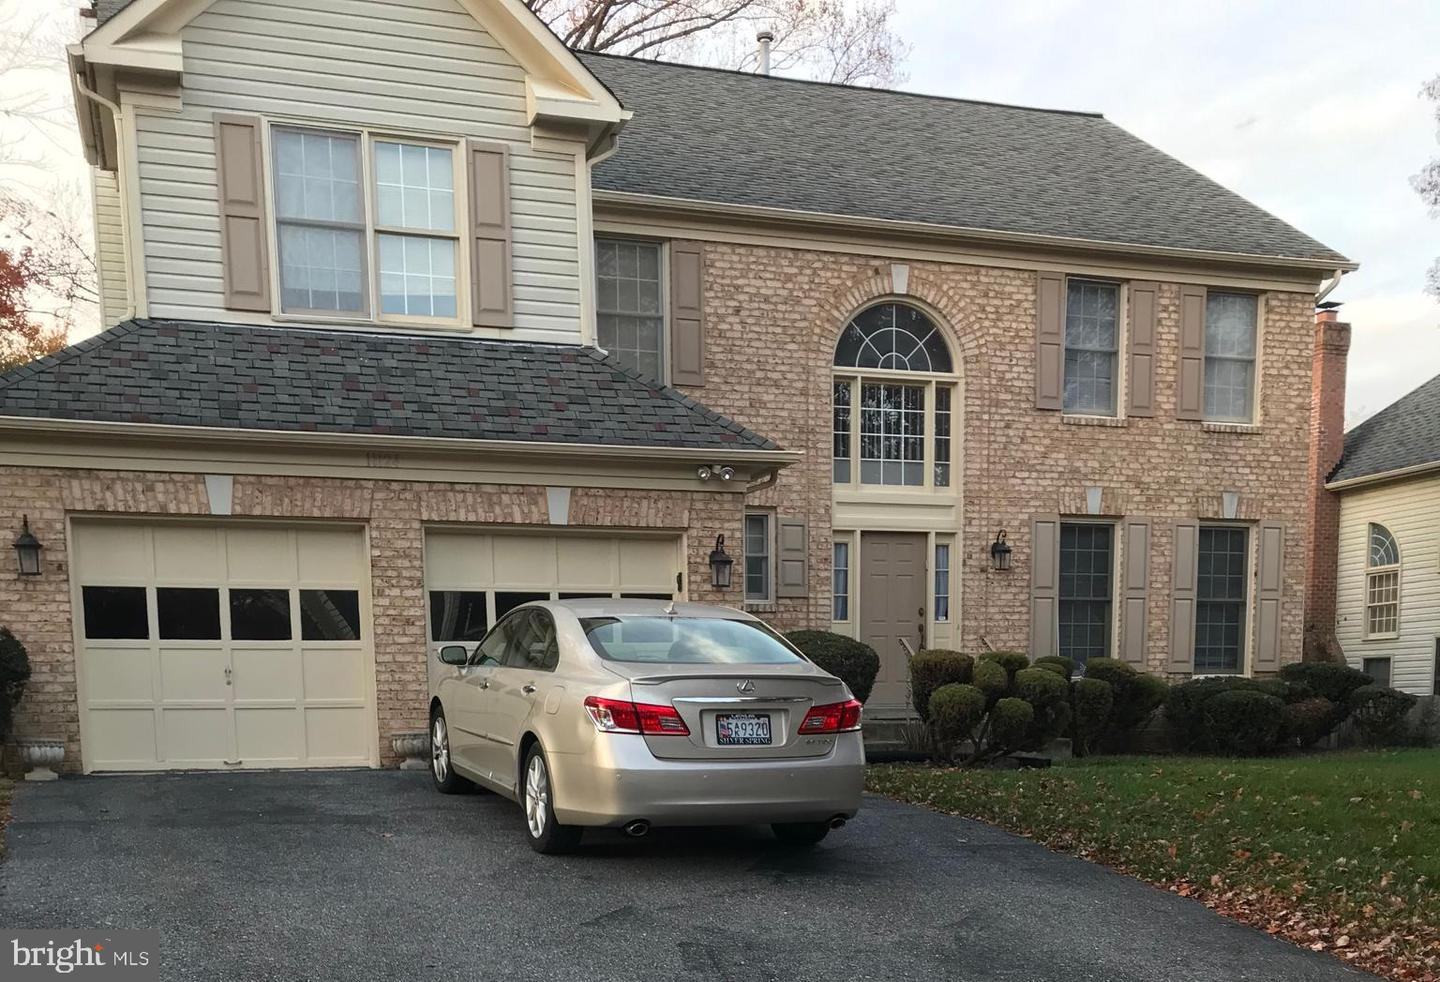 11124 LUTTRELL LANE, SILVER SPRING, Maryland